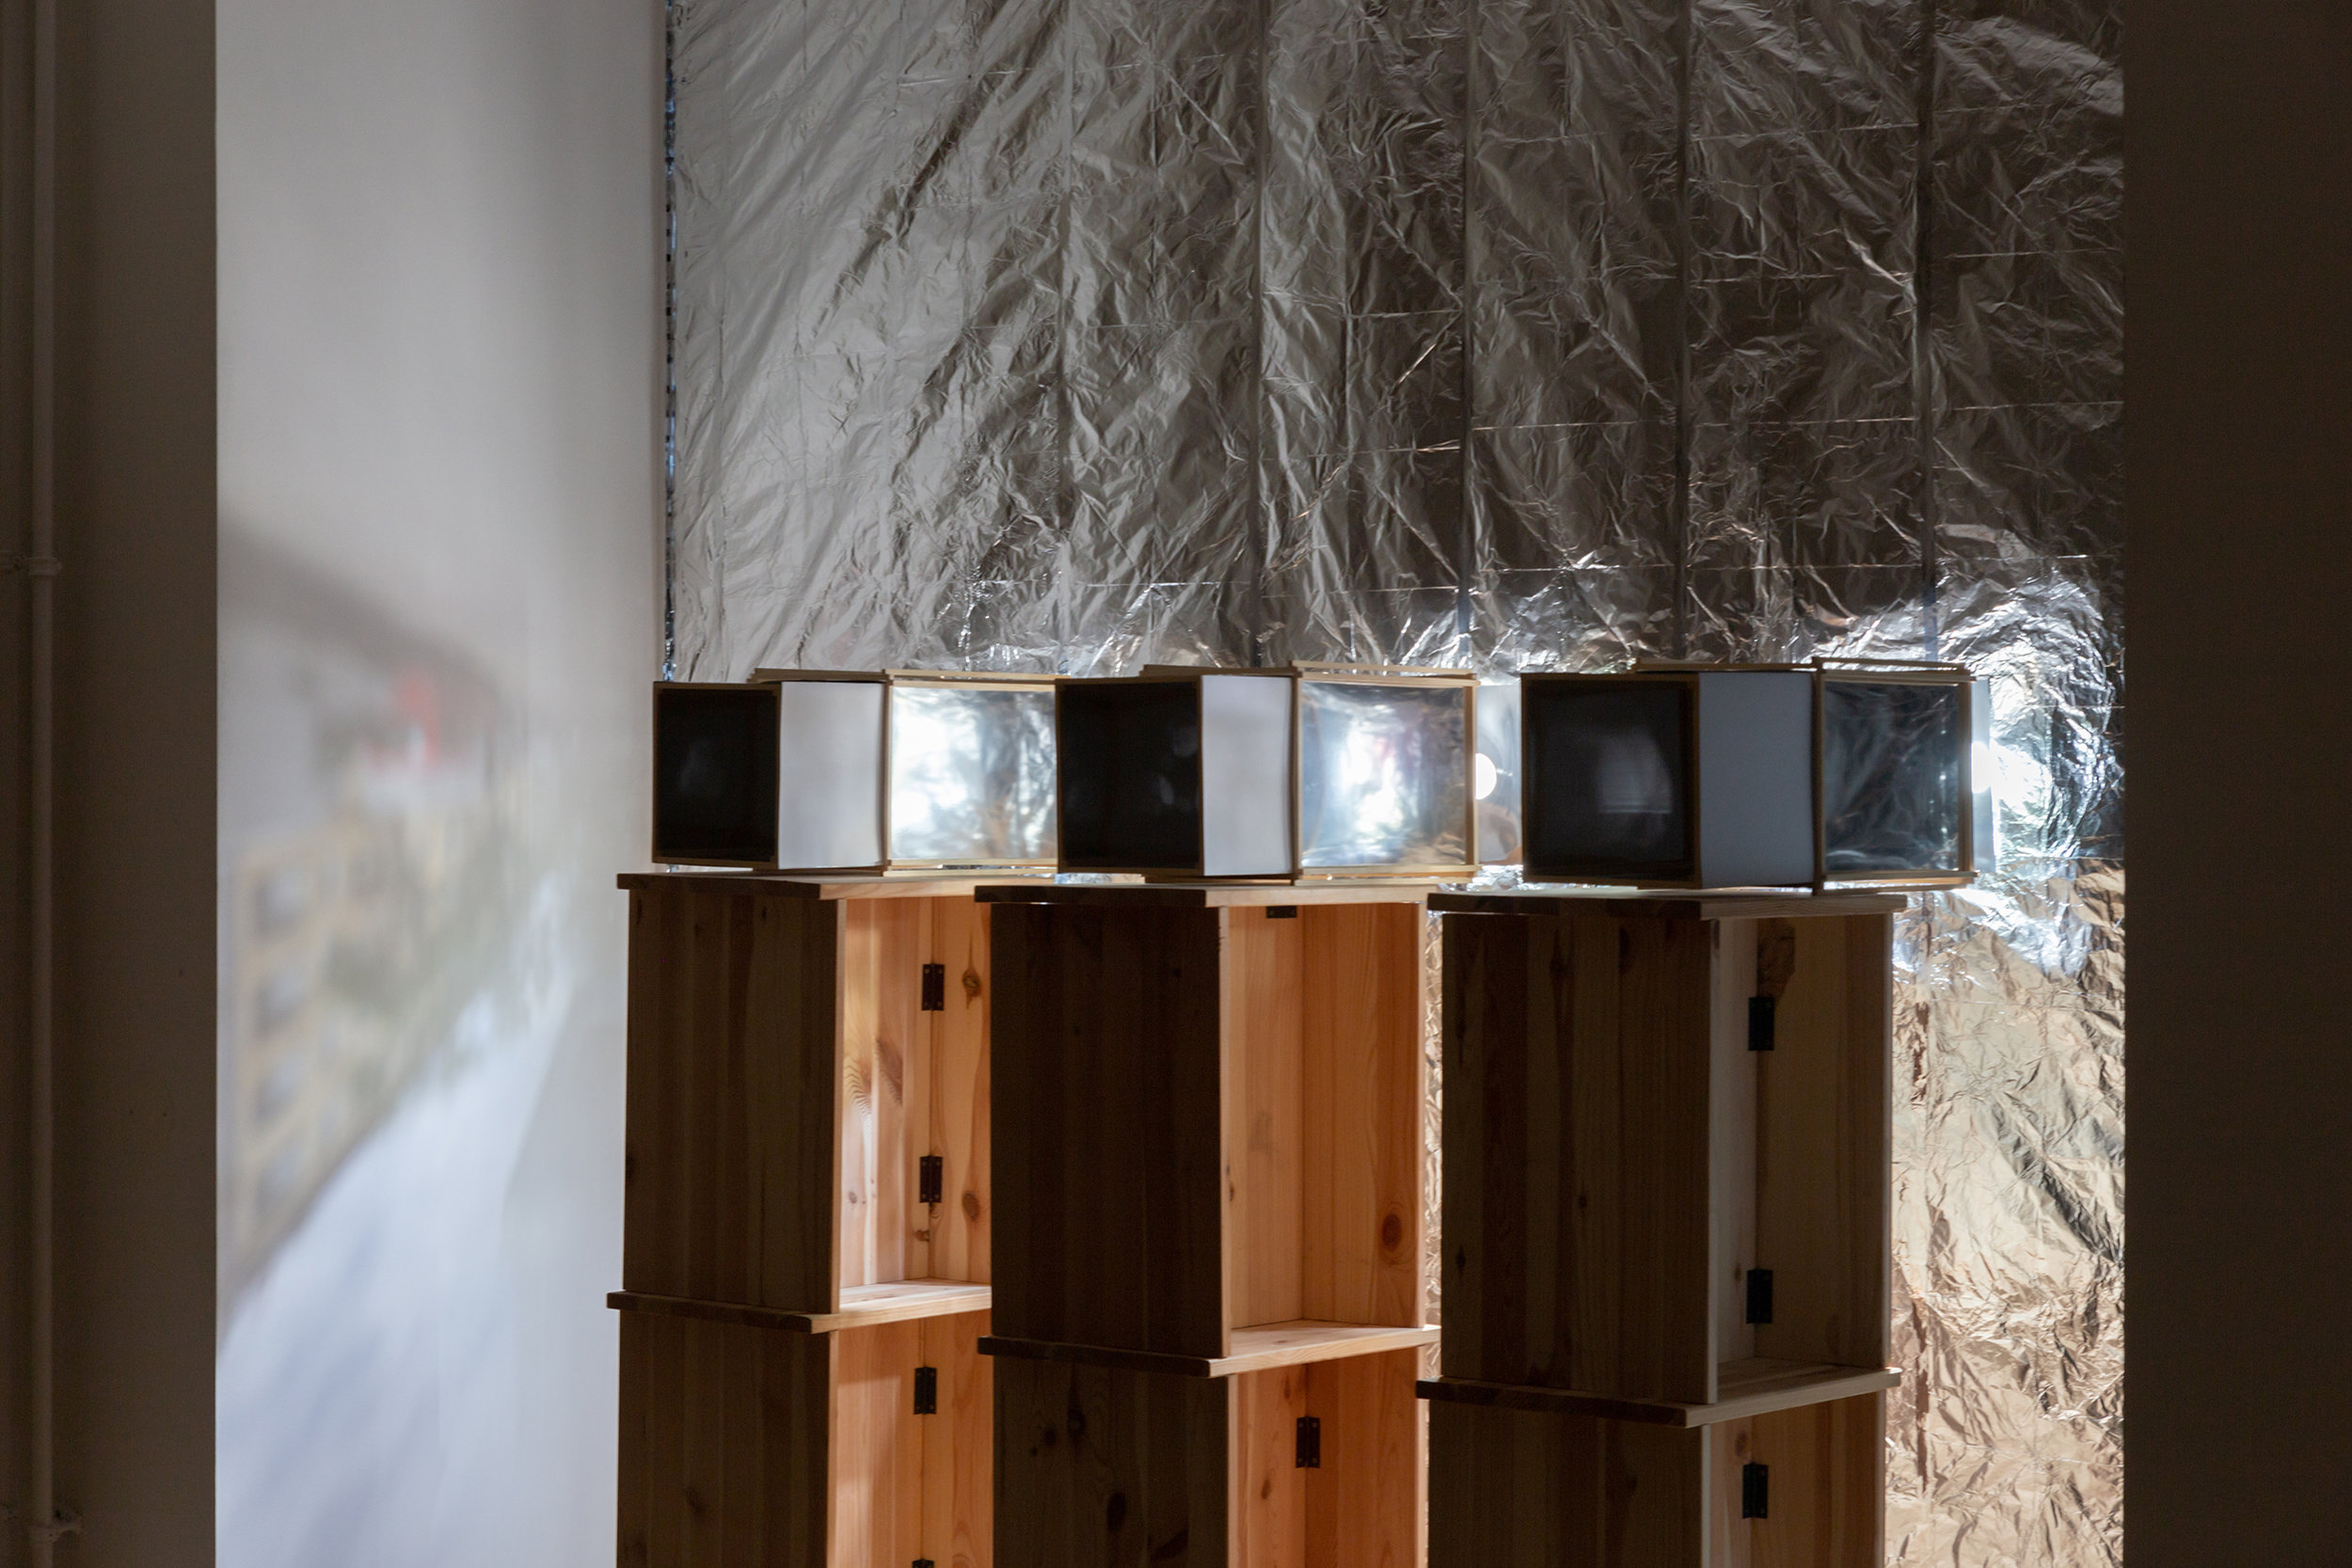 Interior of camera obscura box 1, 2018. Photograph by Benjamin Busch